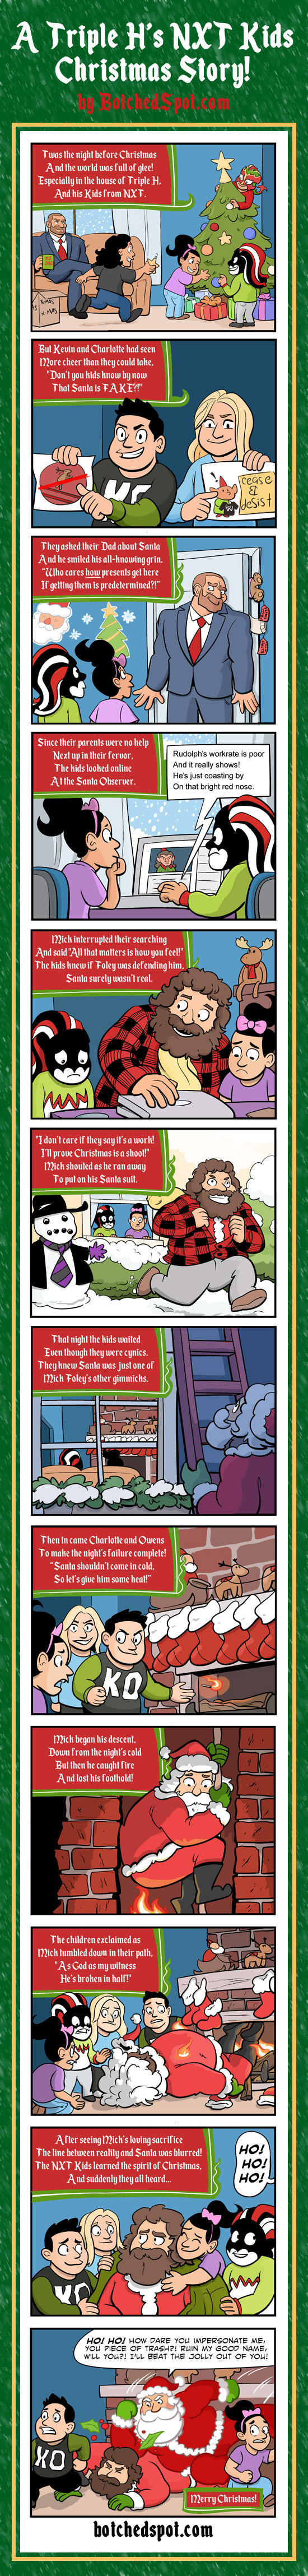 A Triple H's NXT Christmas Story!